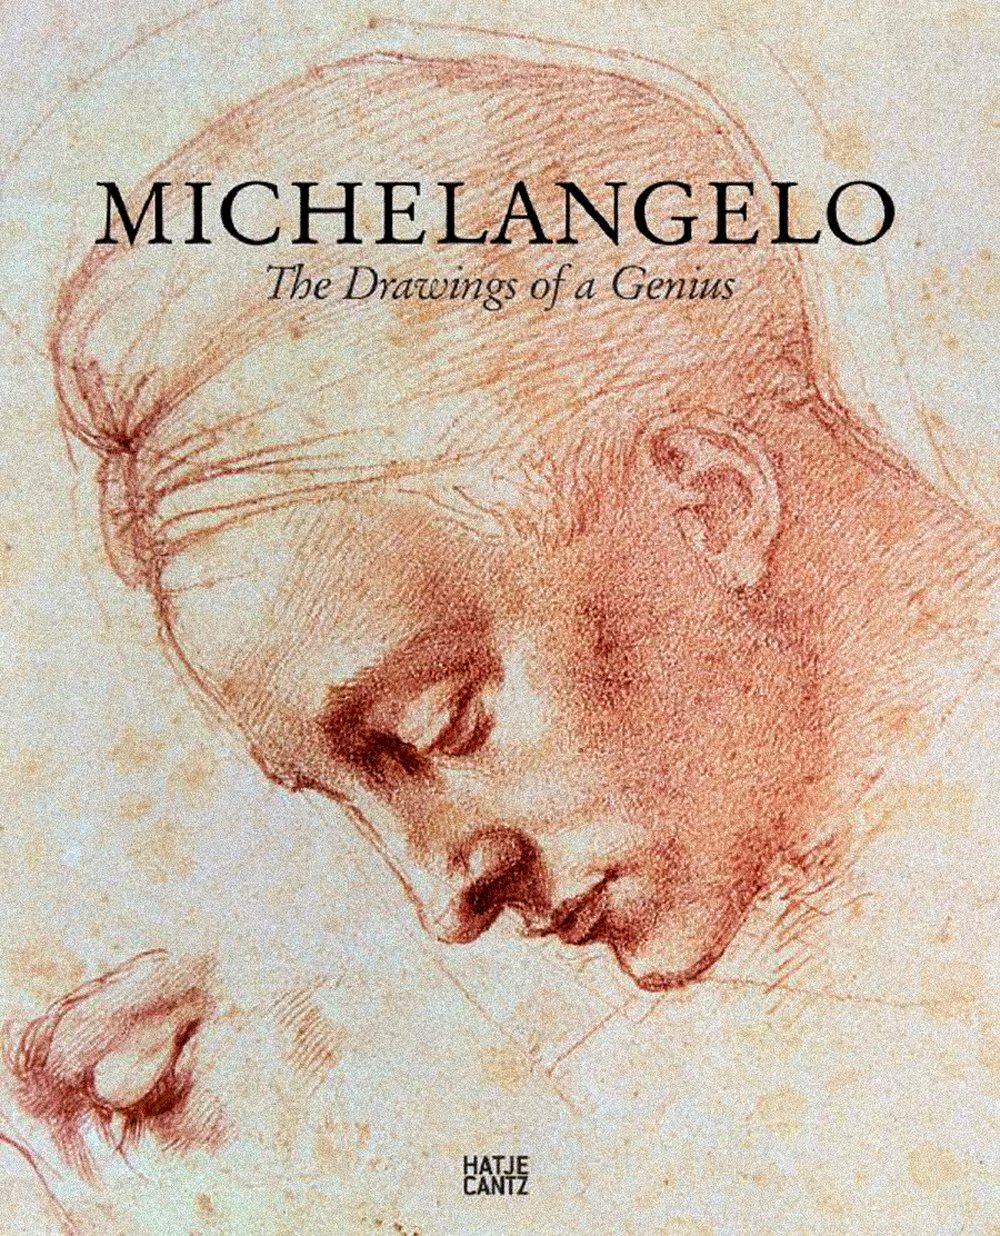 michelangelo the drawings of a genius klaus albrecht schr atilde para der michelangelo the drawings of a genius klaus albrecht schratildeparader achim gnann michaelangelo 9783775725897 com books